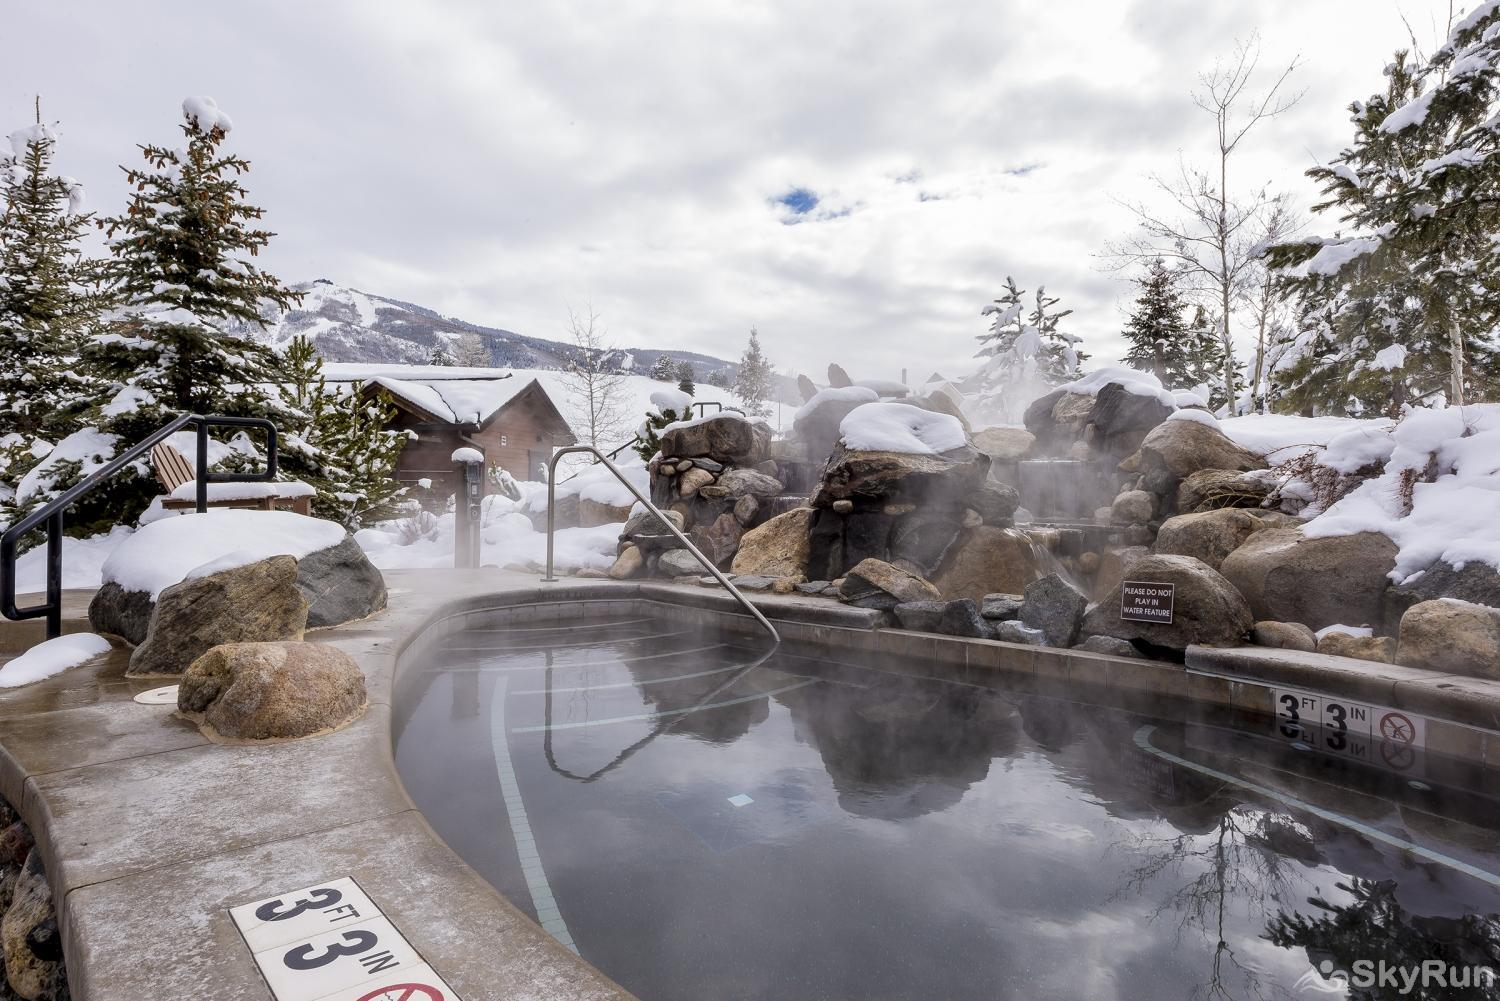 First Tracks 4204 Enjoy a soak in this hot tub at the Trailhead Lodge, after a fun day of skiing!